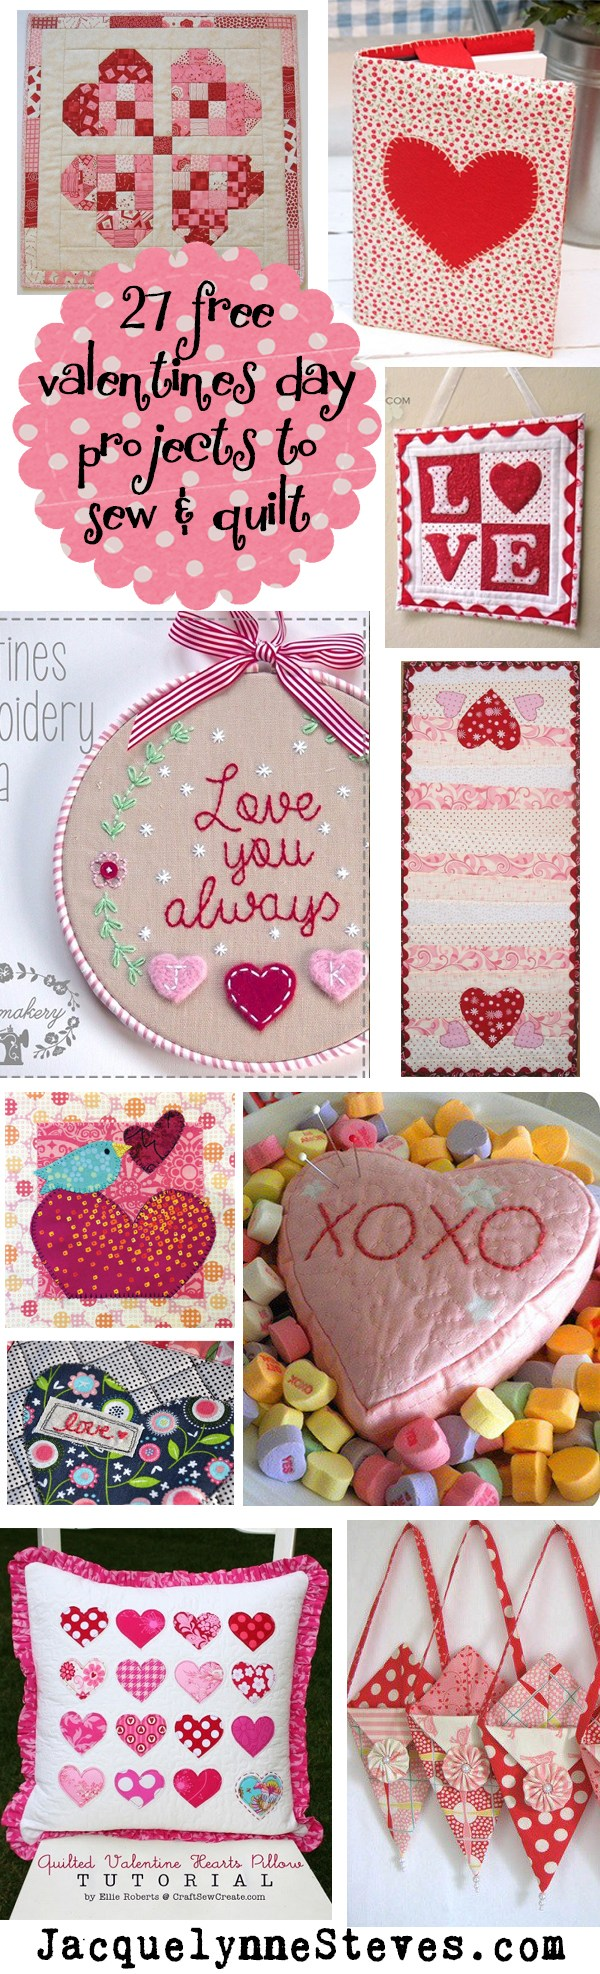 Quilted heart ideas for Valentine's Day